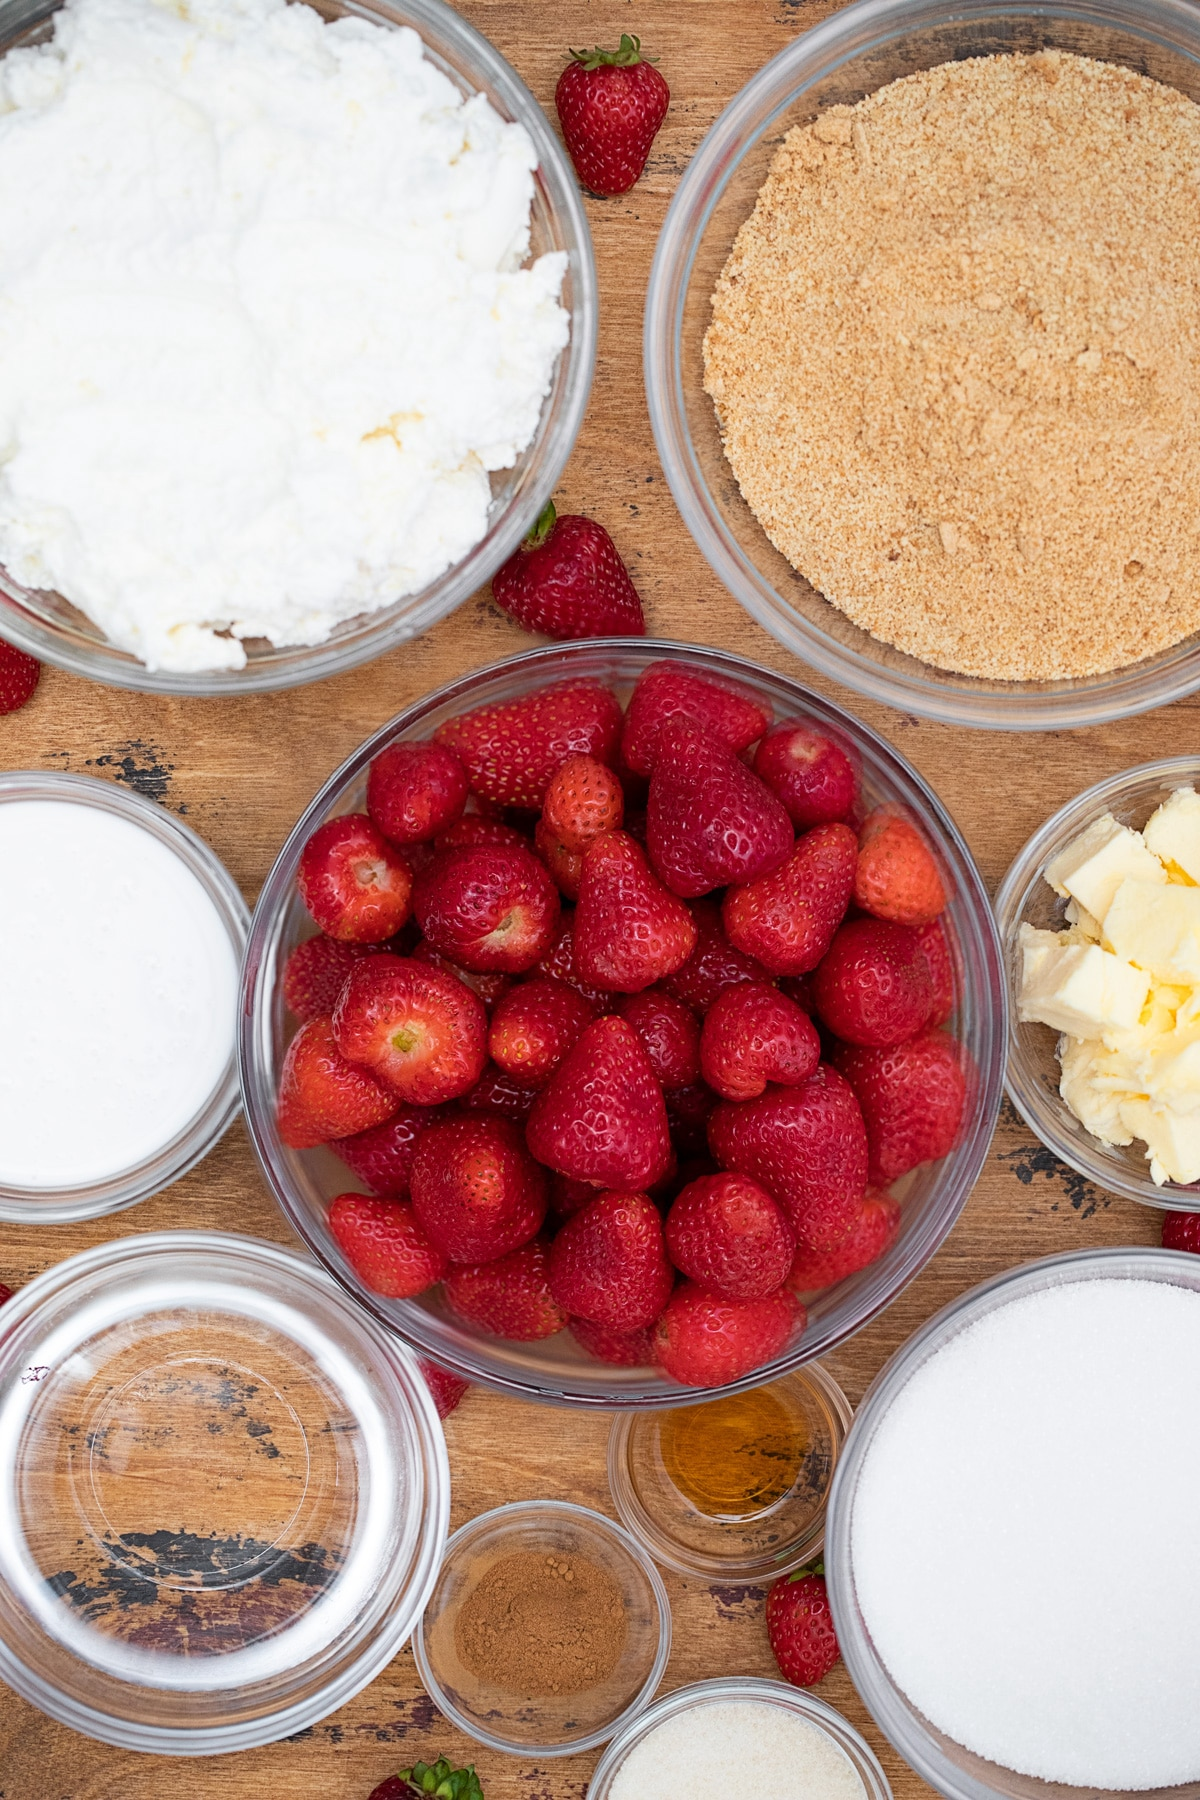 Ingredients for no-bake strawberry cheesecake